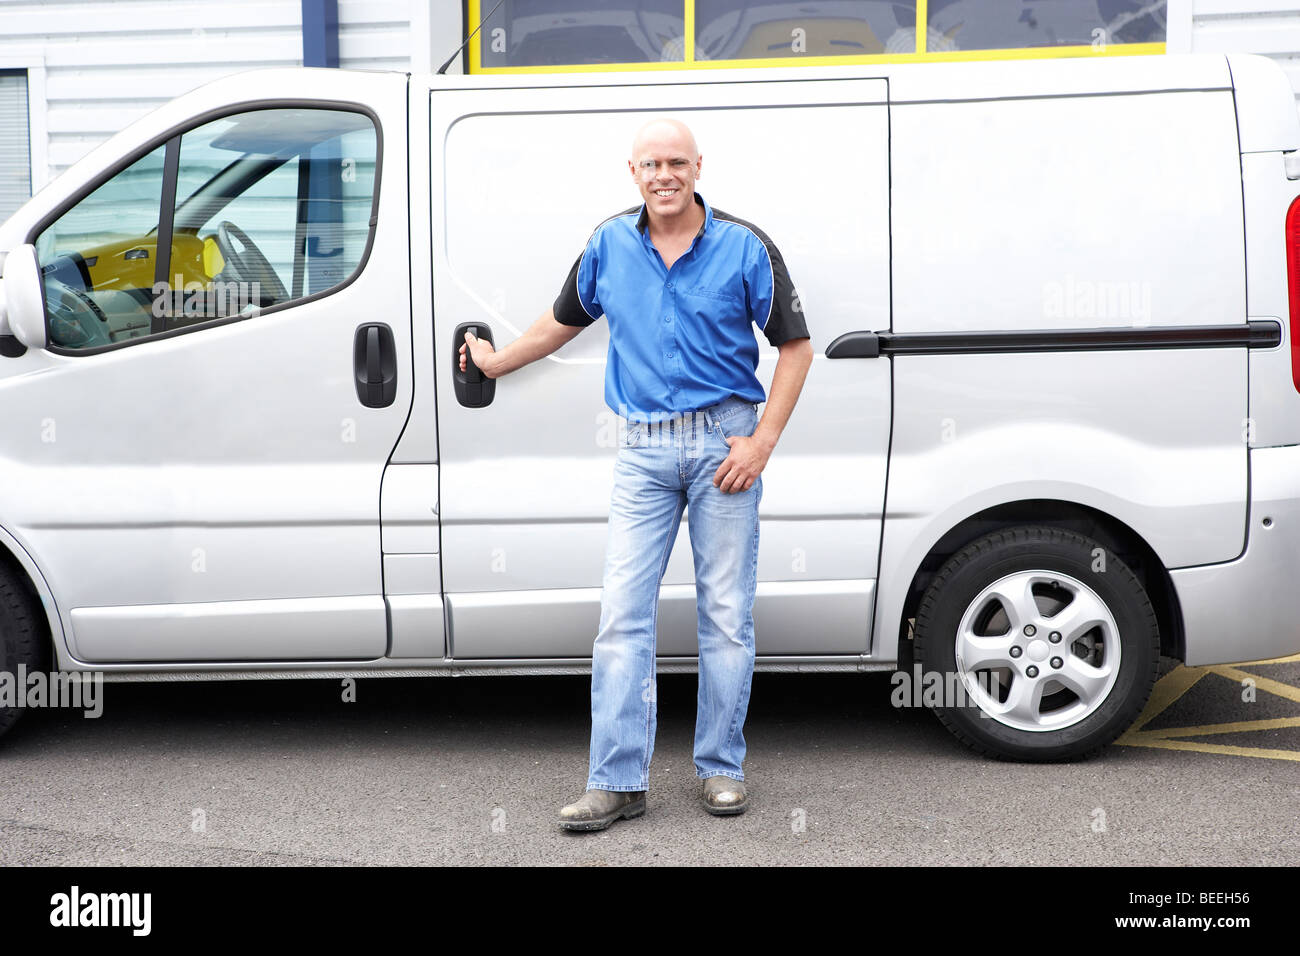 Man standing next to van - Stock Image